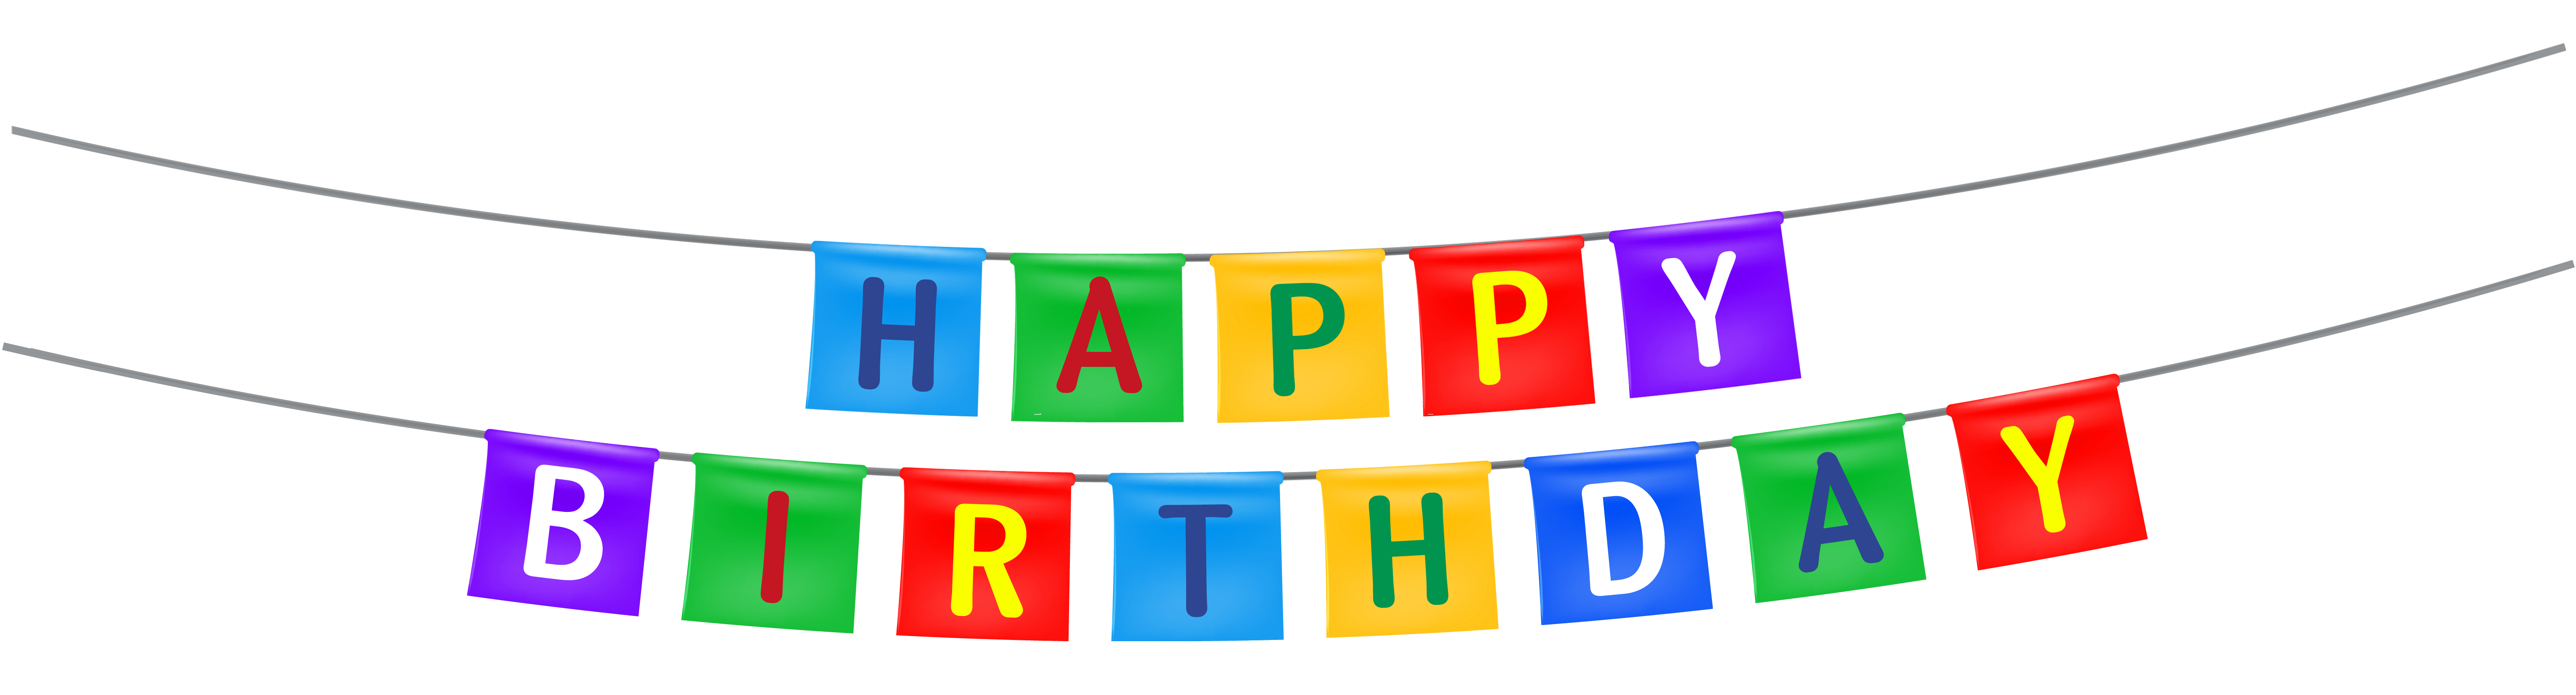 Transparent background happy birthday clipart image black and white library Birthday Banner Clipart | Free download best Birthday Banner Clipart ... image black and white library